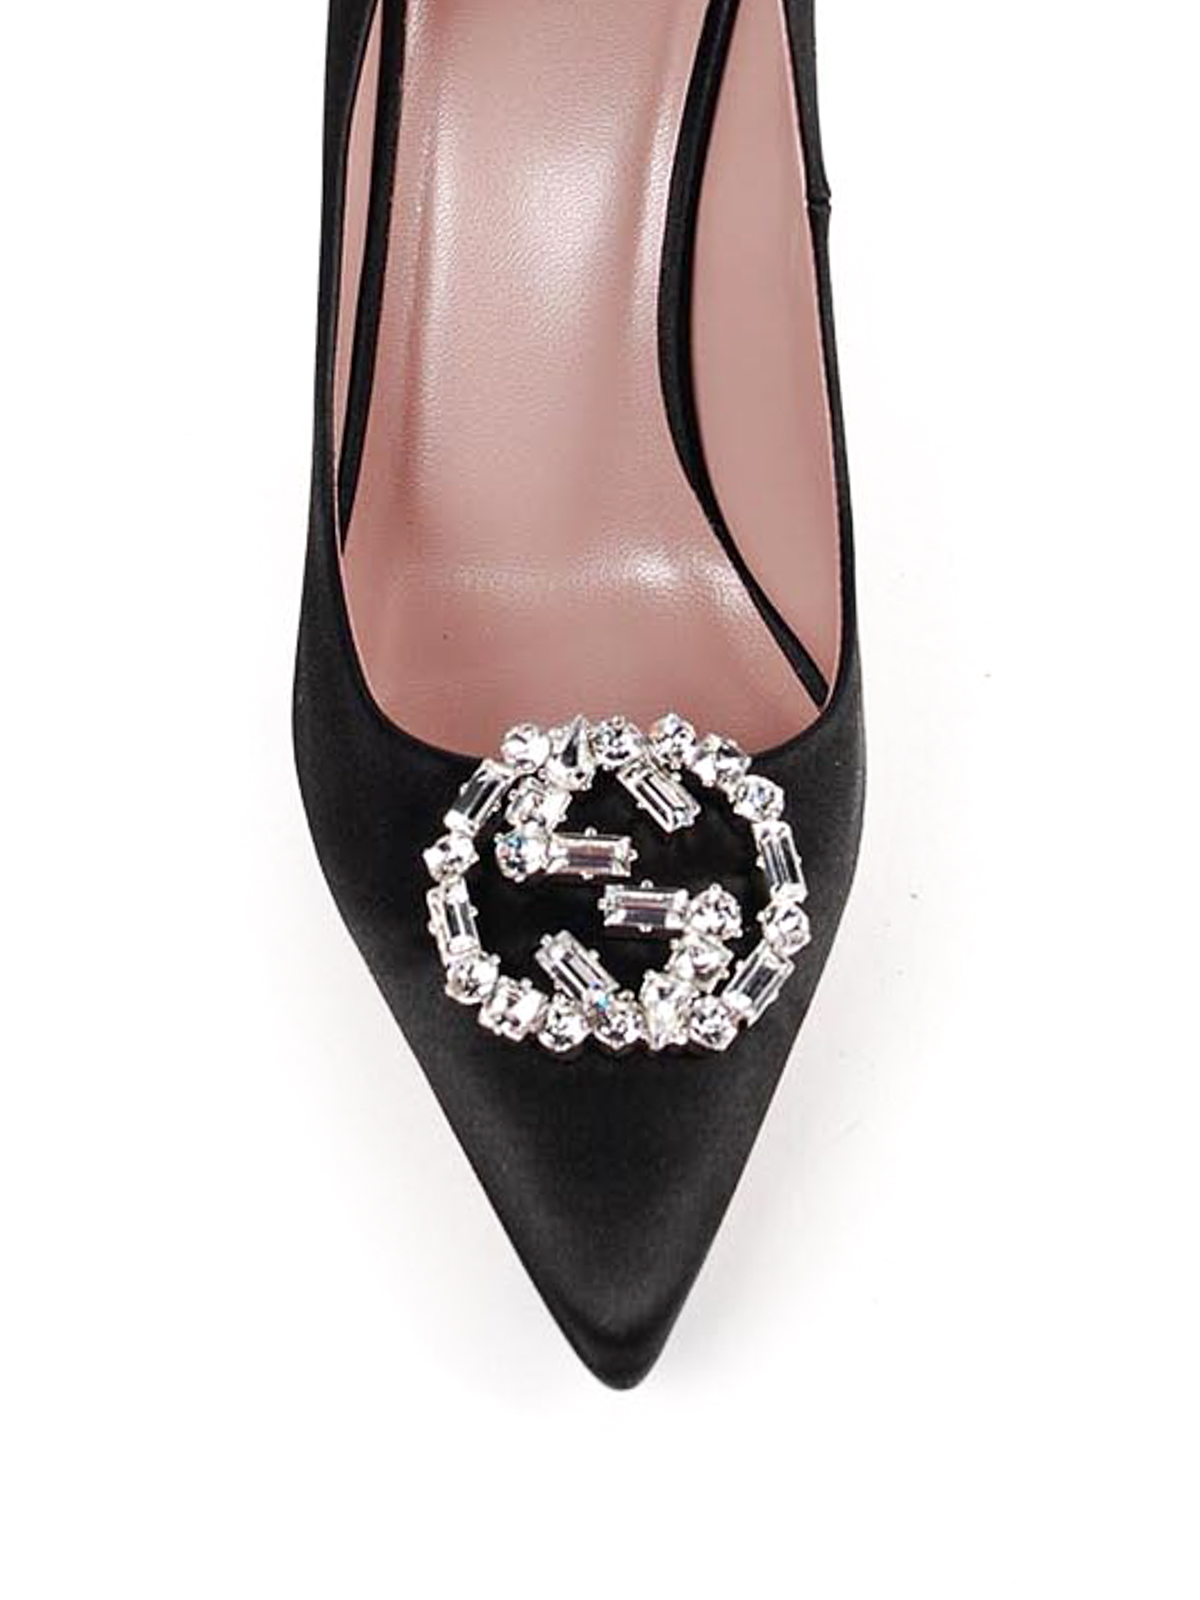 689fe118f6c2 Gucci - Crystal GG satin pumps - court shoes - 388506 F1400 1000